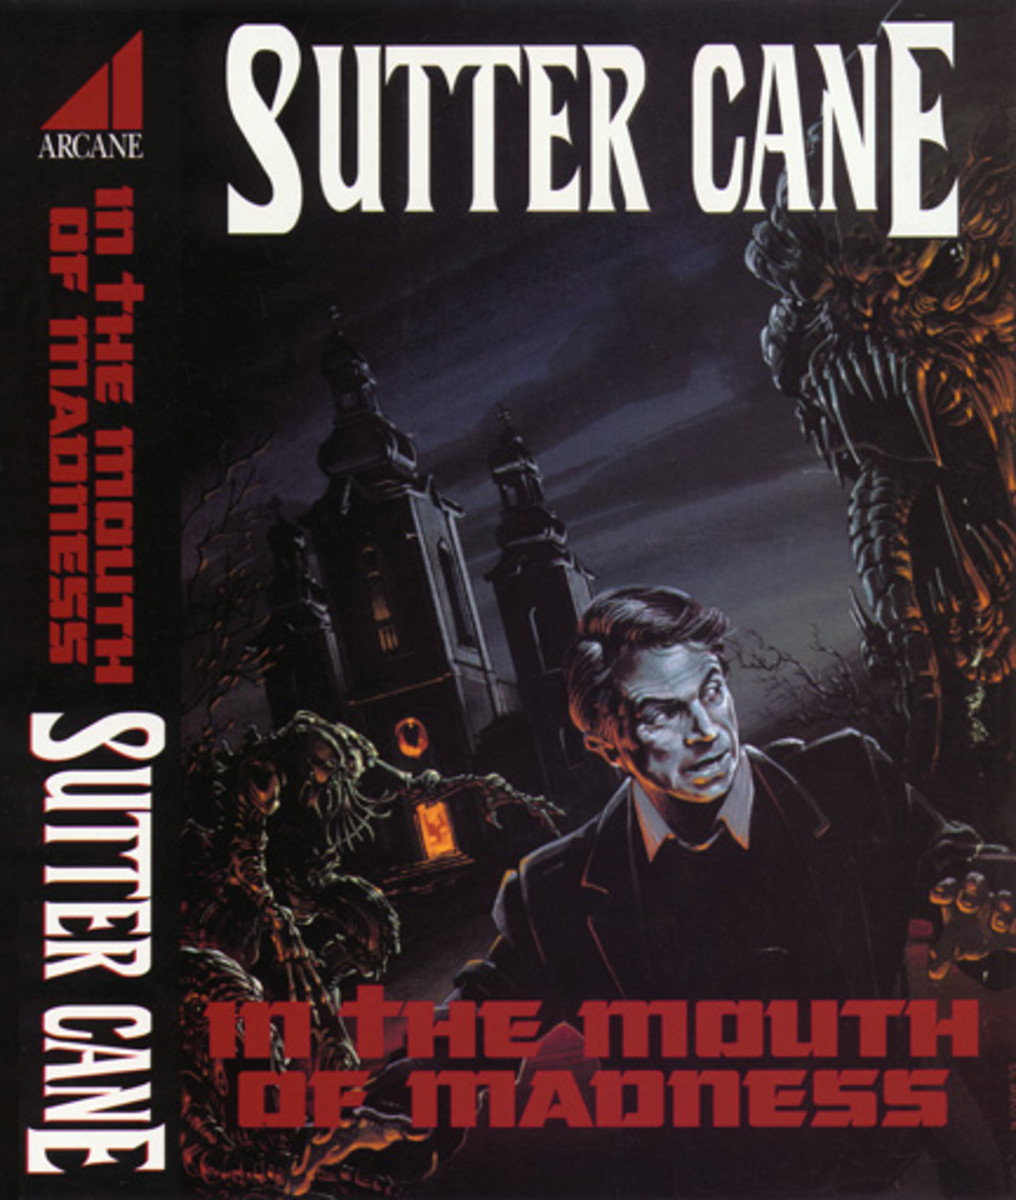 Do you read Sutter Cane ?